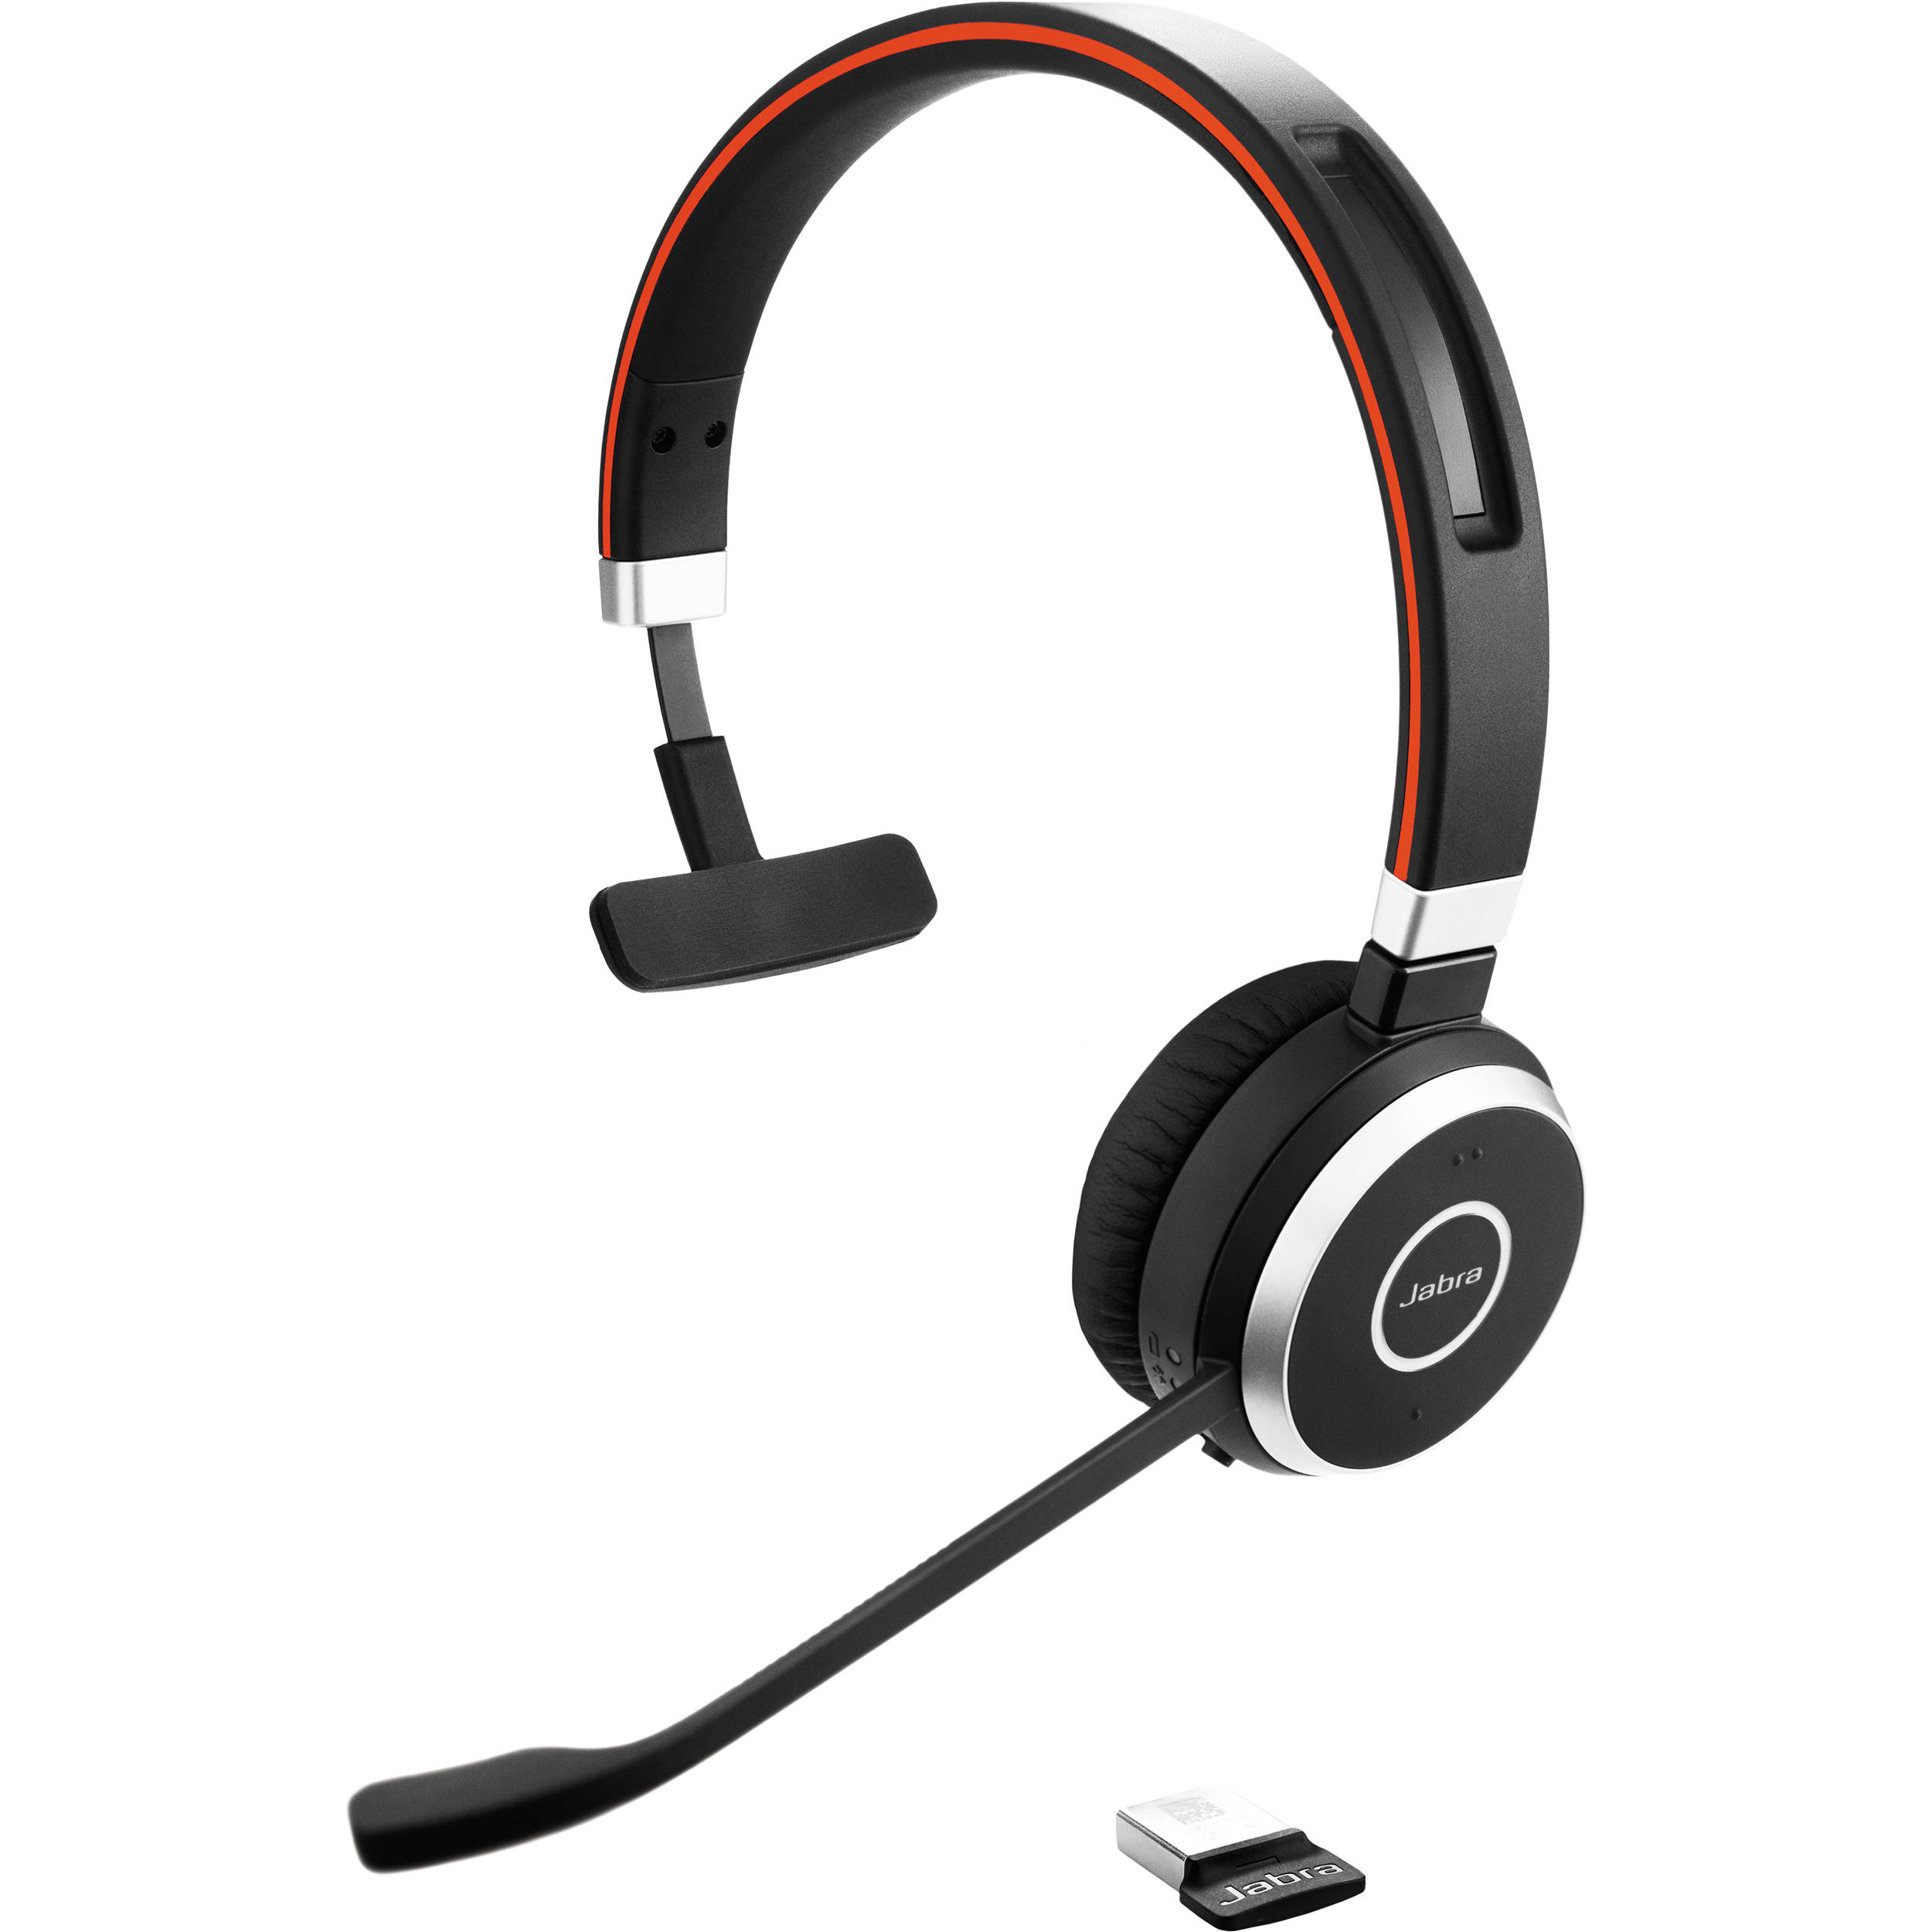 Jabra Evolve 65 Mono USB Bluetooth Wireless MS Headset